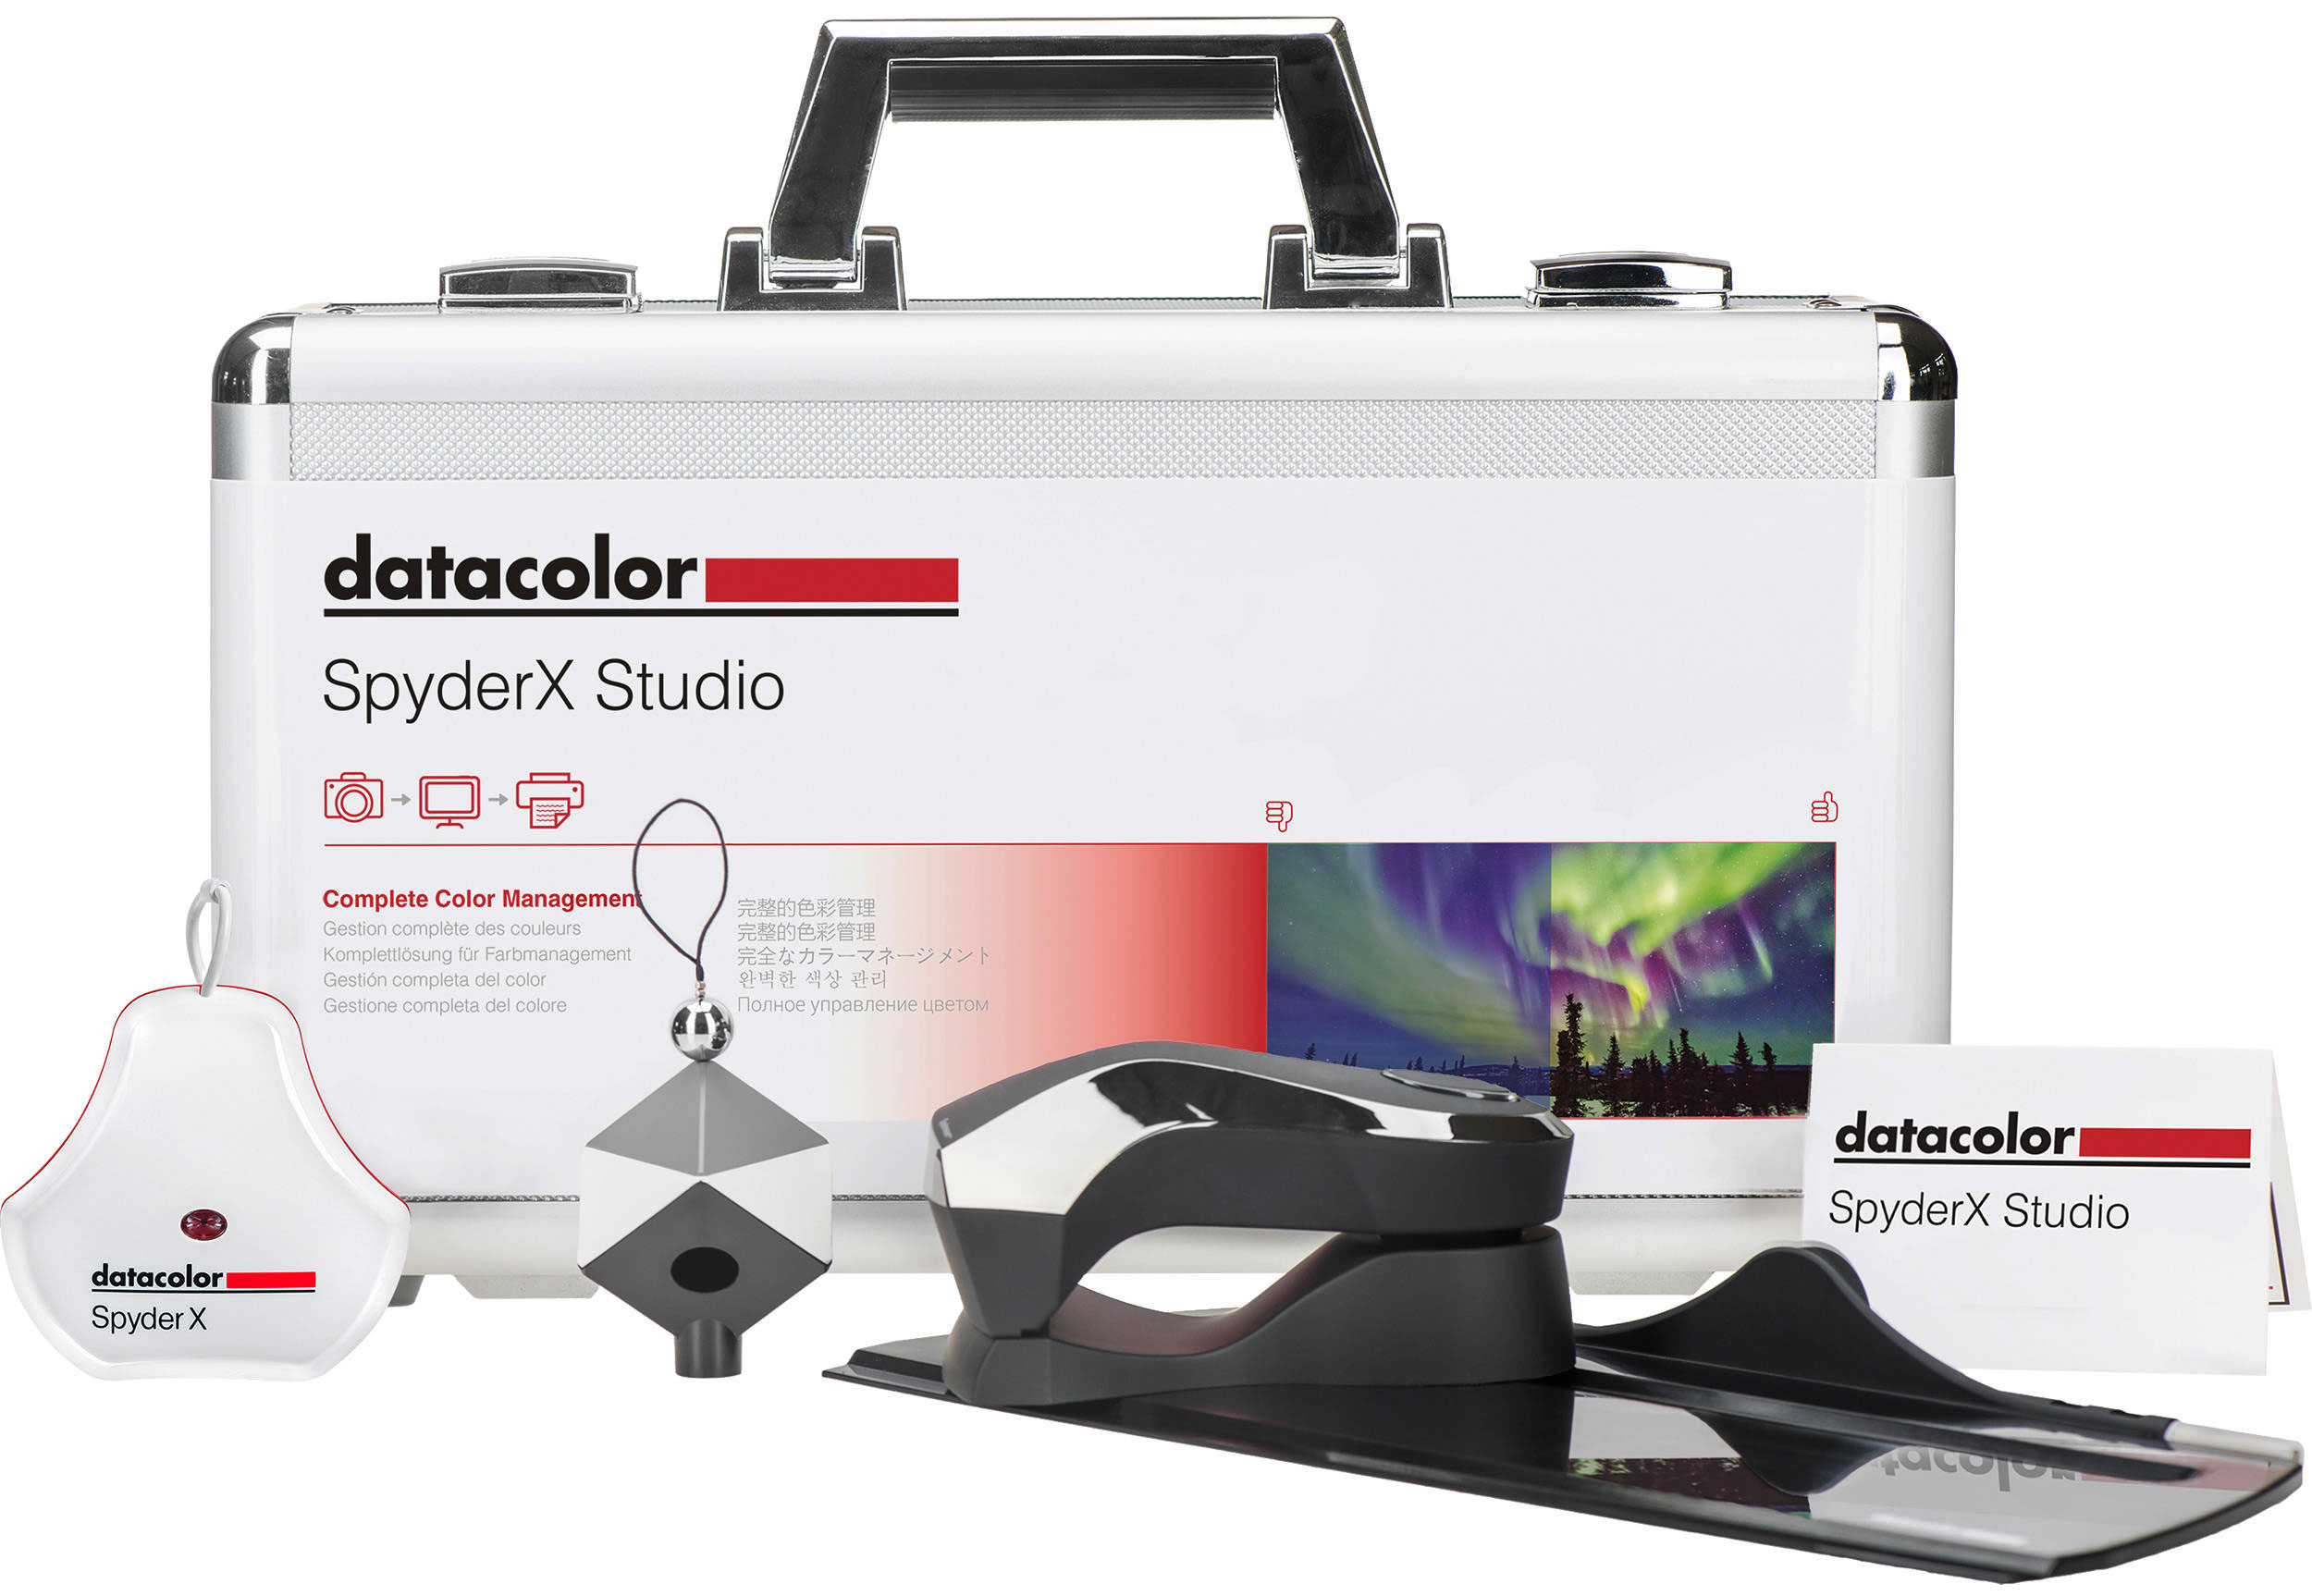 The Datacolor SpyderX Studio allows you to customize your own ICC profiles.